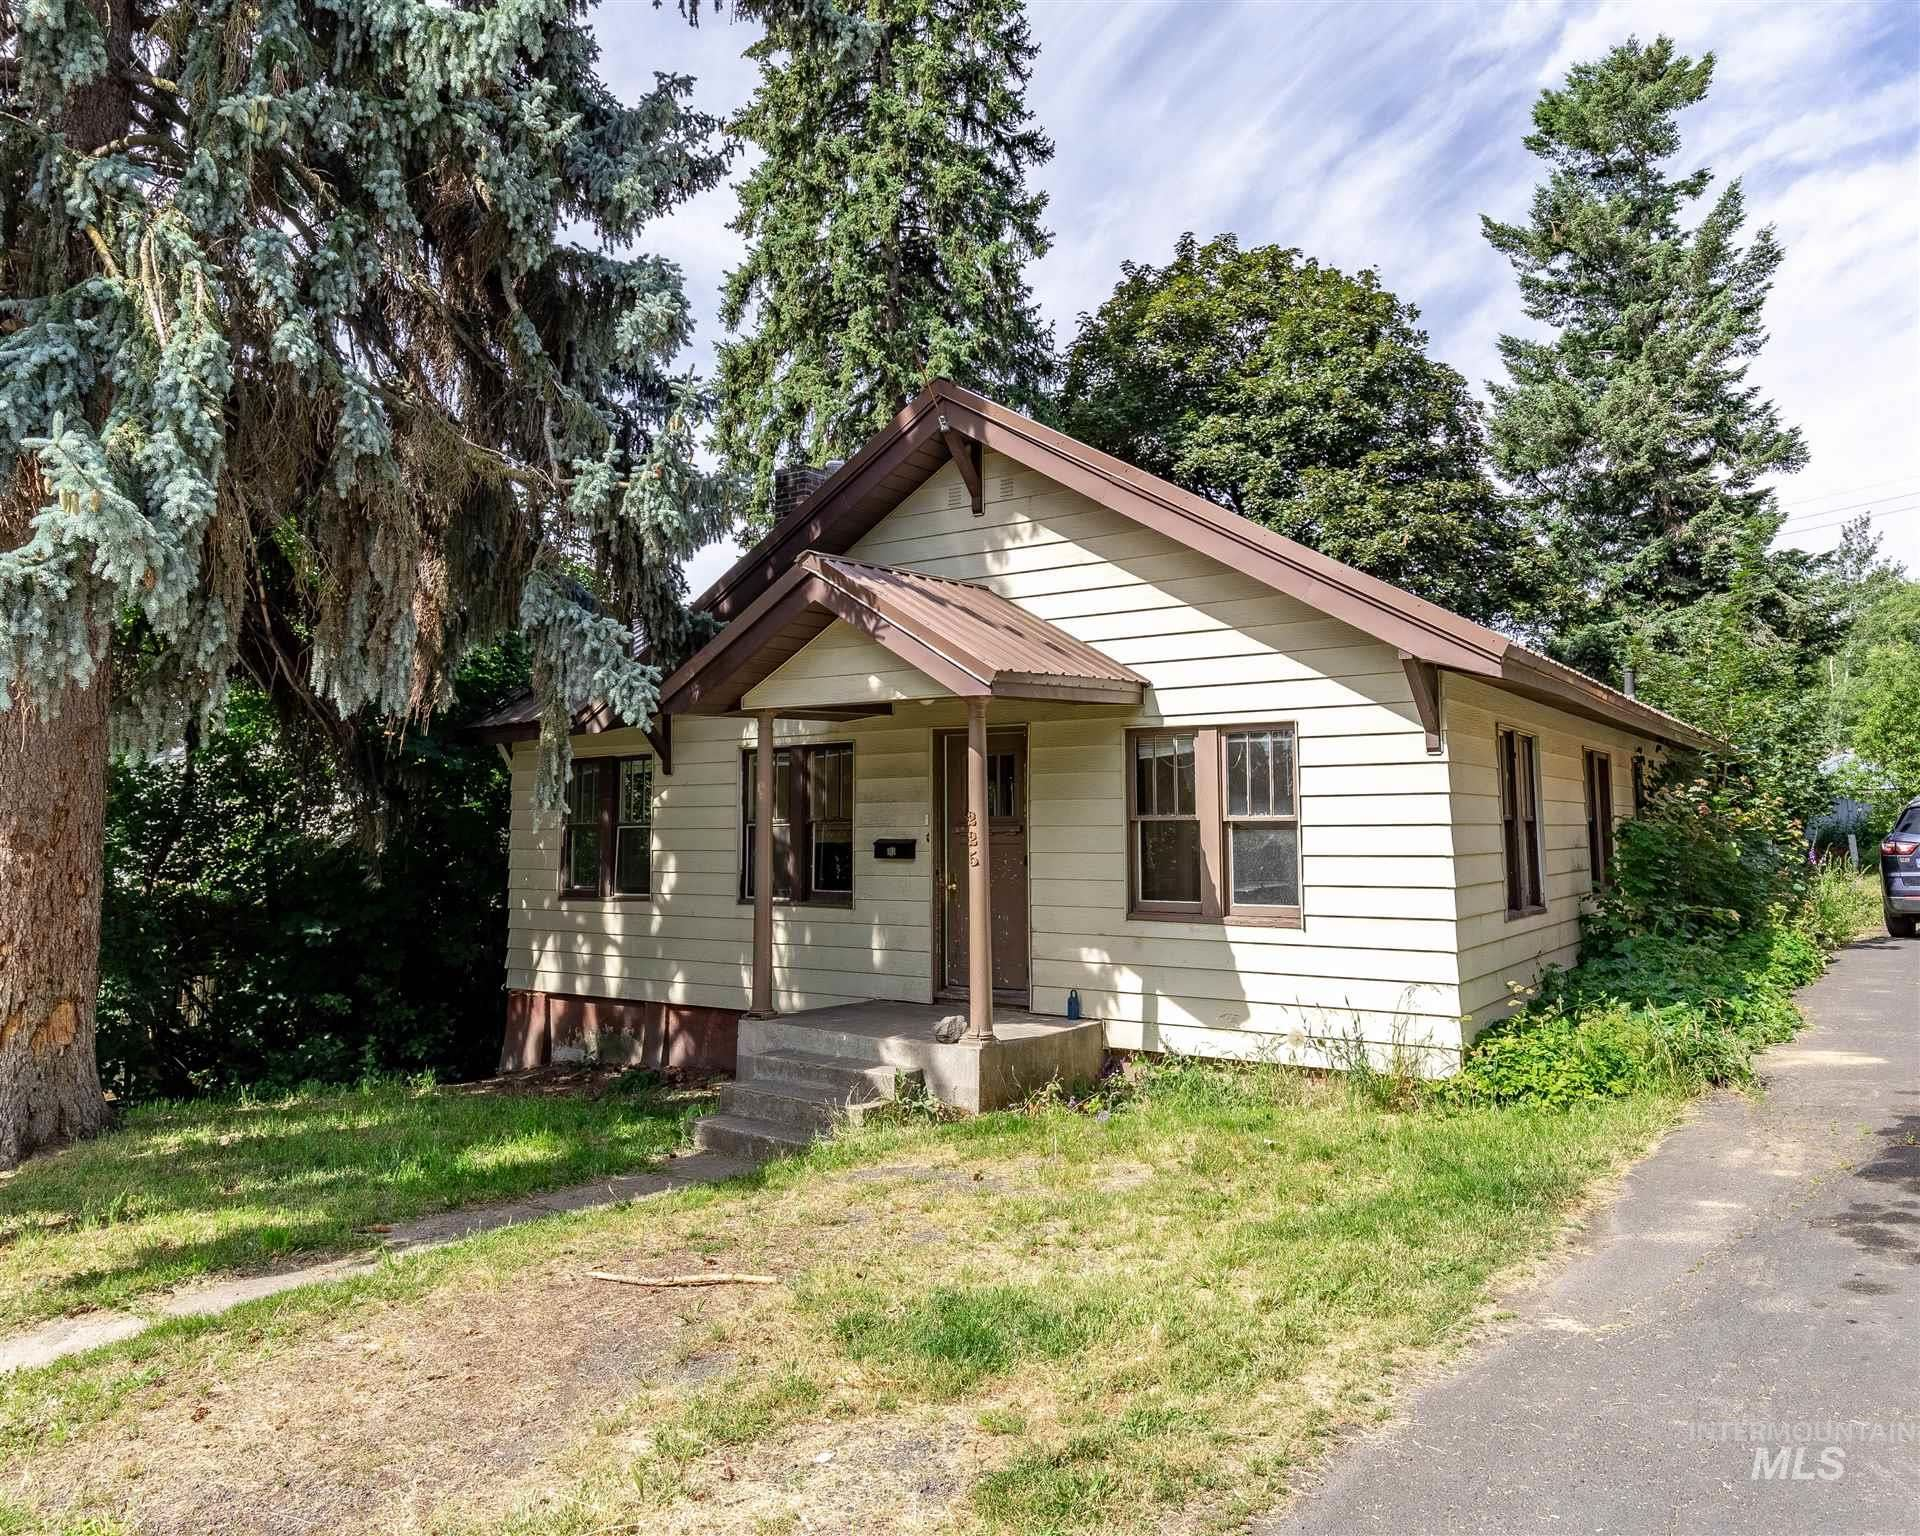 Photo of 225 Cherry, Moscow, ID 83843 (MLS # 98773551)